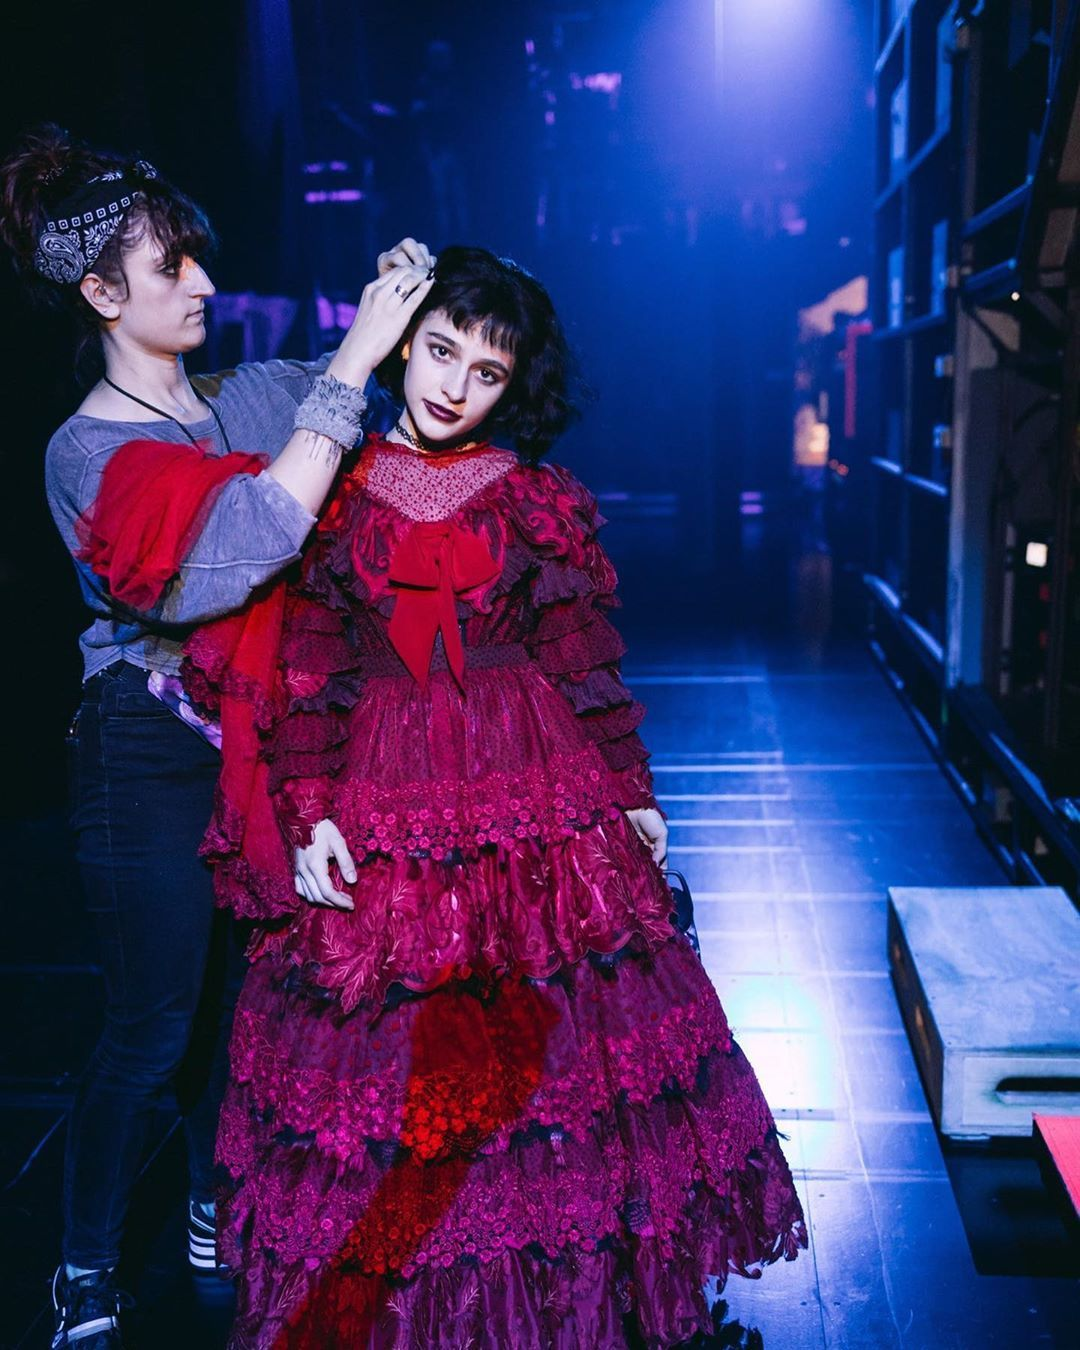 𝐁𝐫𝐨𝐚𝐝𝐰𝐚𝐲 𝐂𝐨𝐧𝐭𝐞𝐧𝐭 On Instagram Here Comes The Bride Here Comes The Brideeee Photography Broadway Costumes Beetlejuice Lydia Beetlejuice